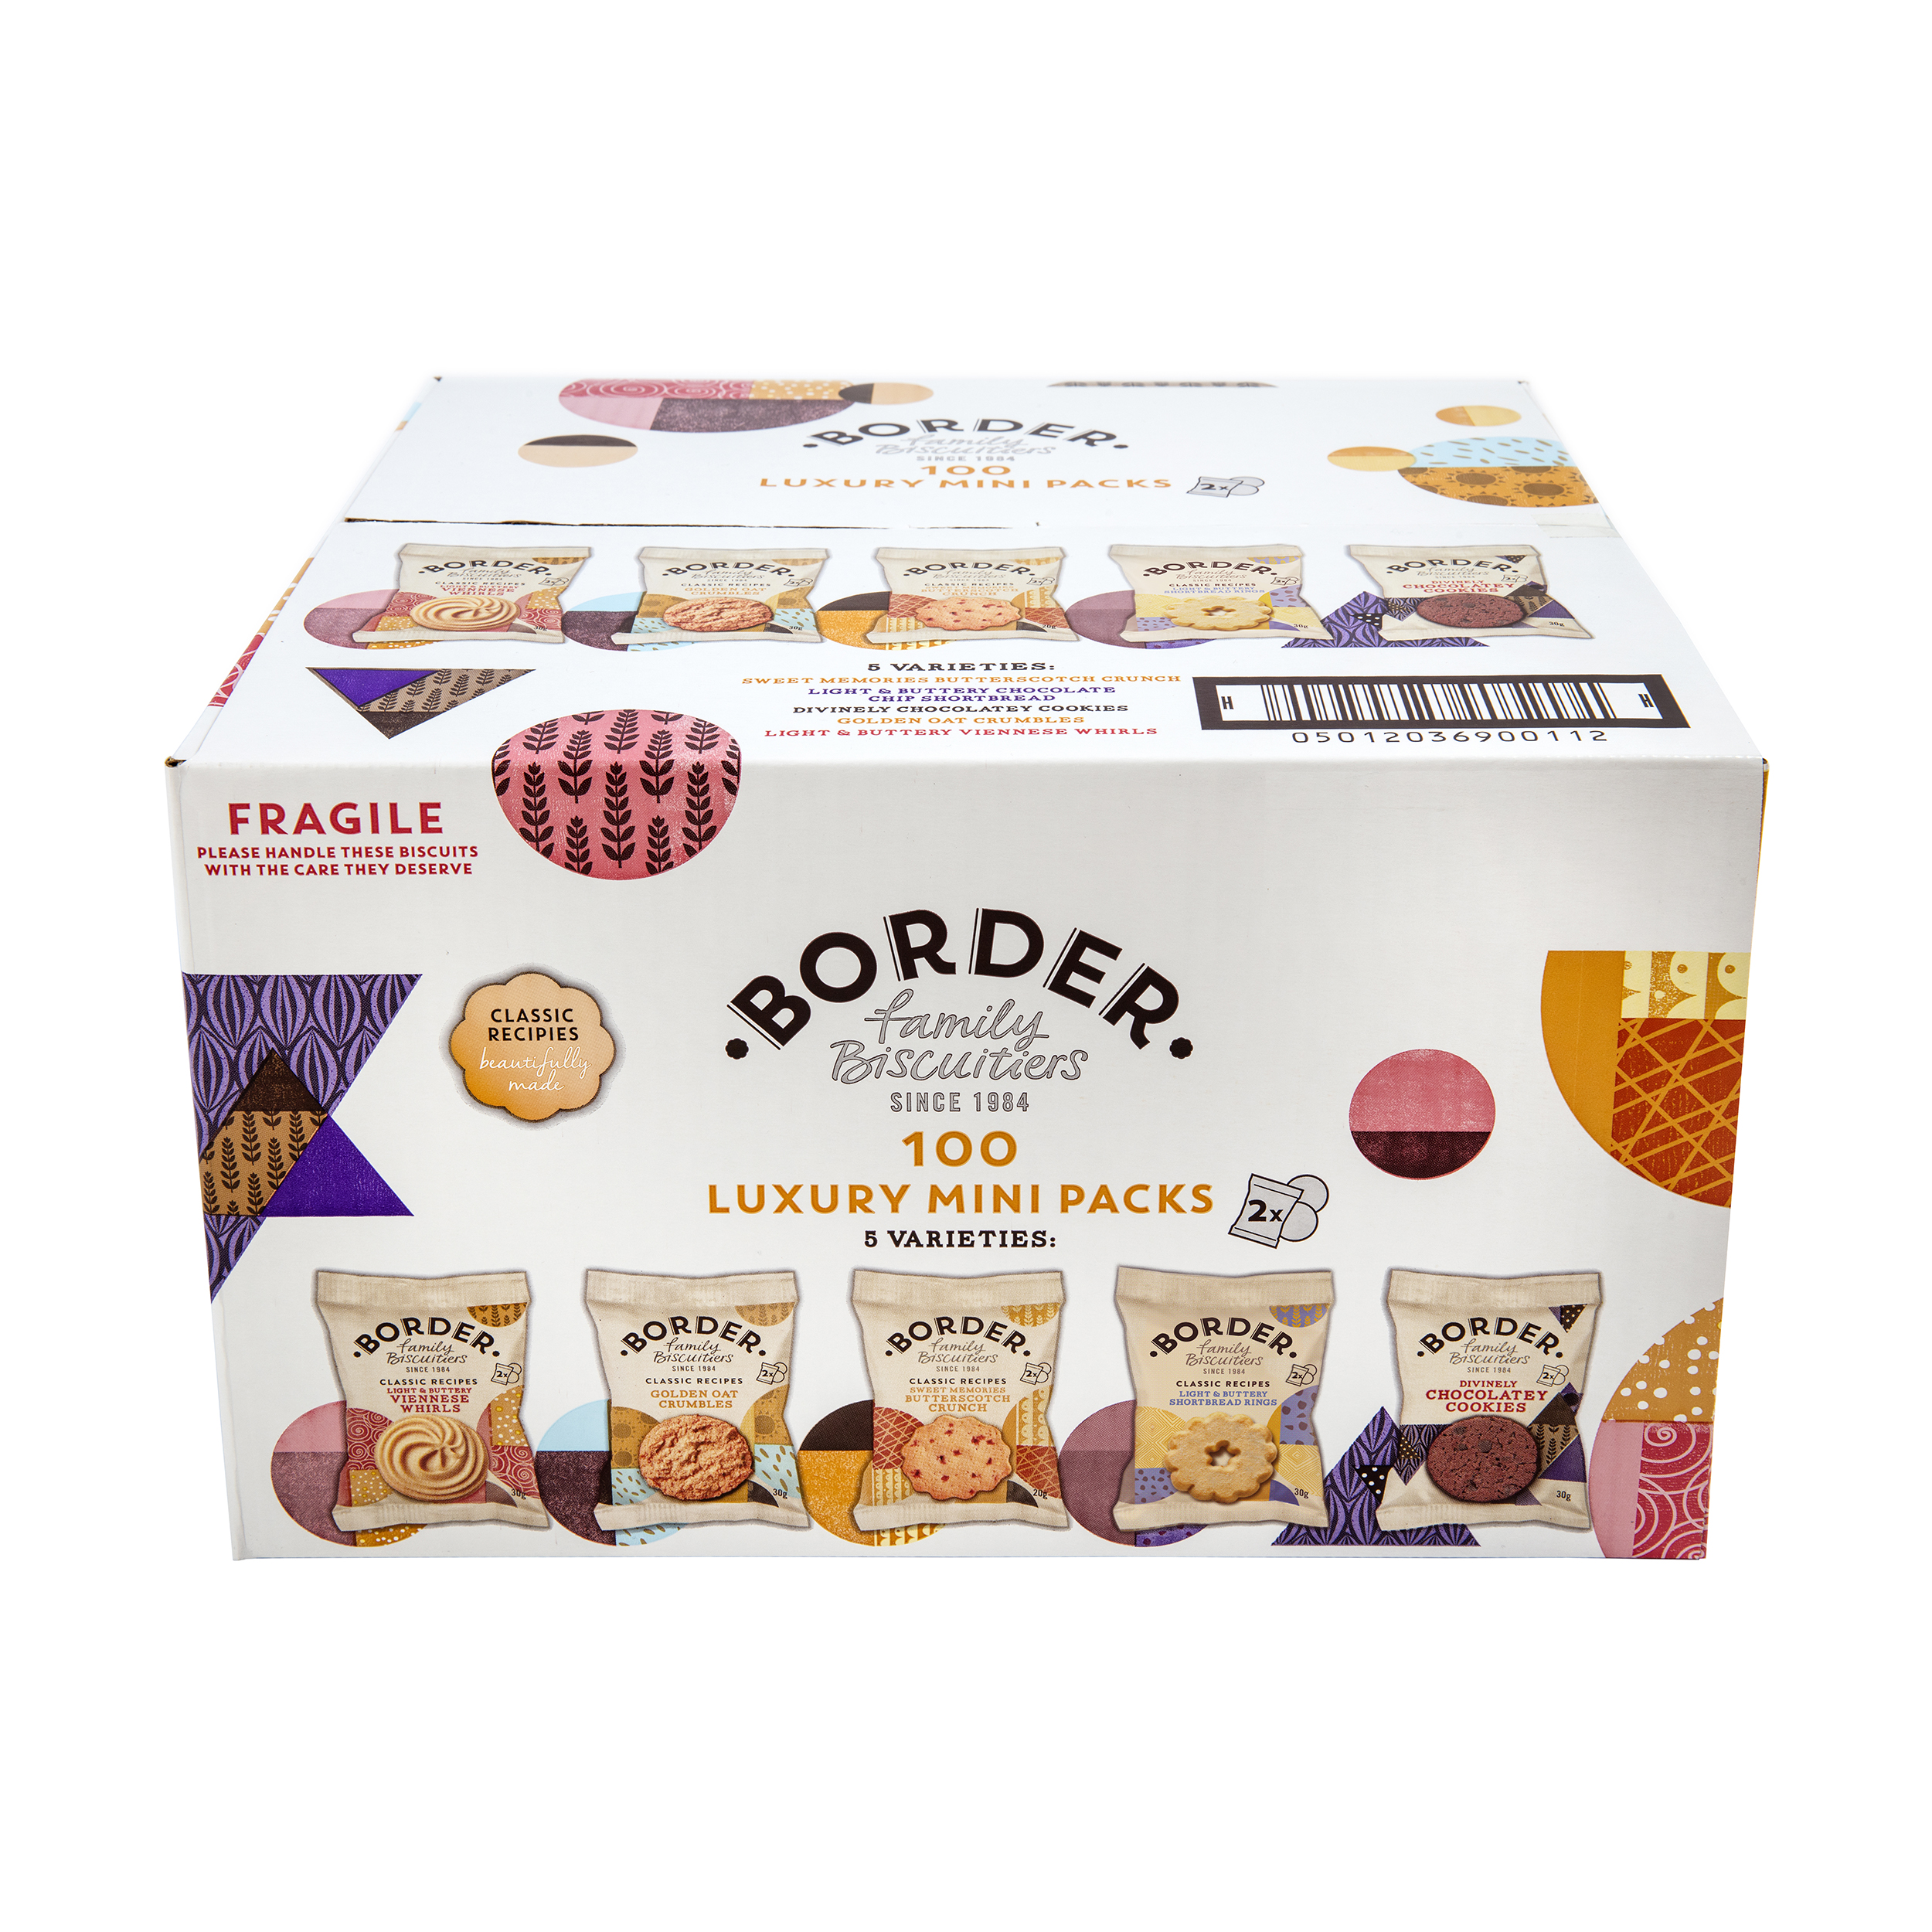 Border Luxury Biscuits 5 Varieties Mini Twin Packs Ref 101049